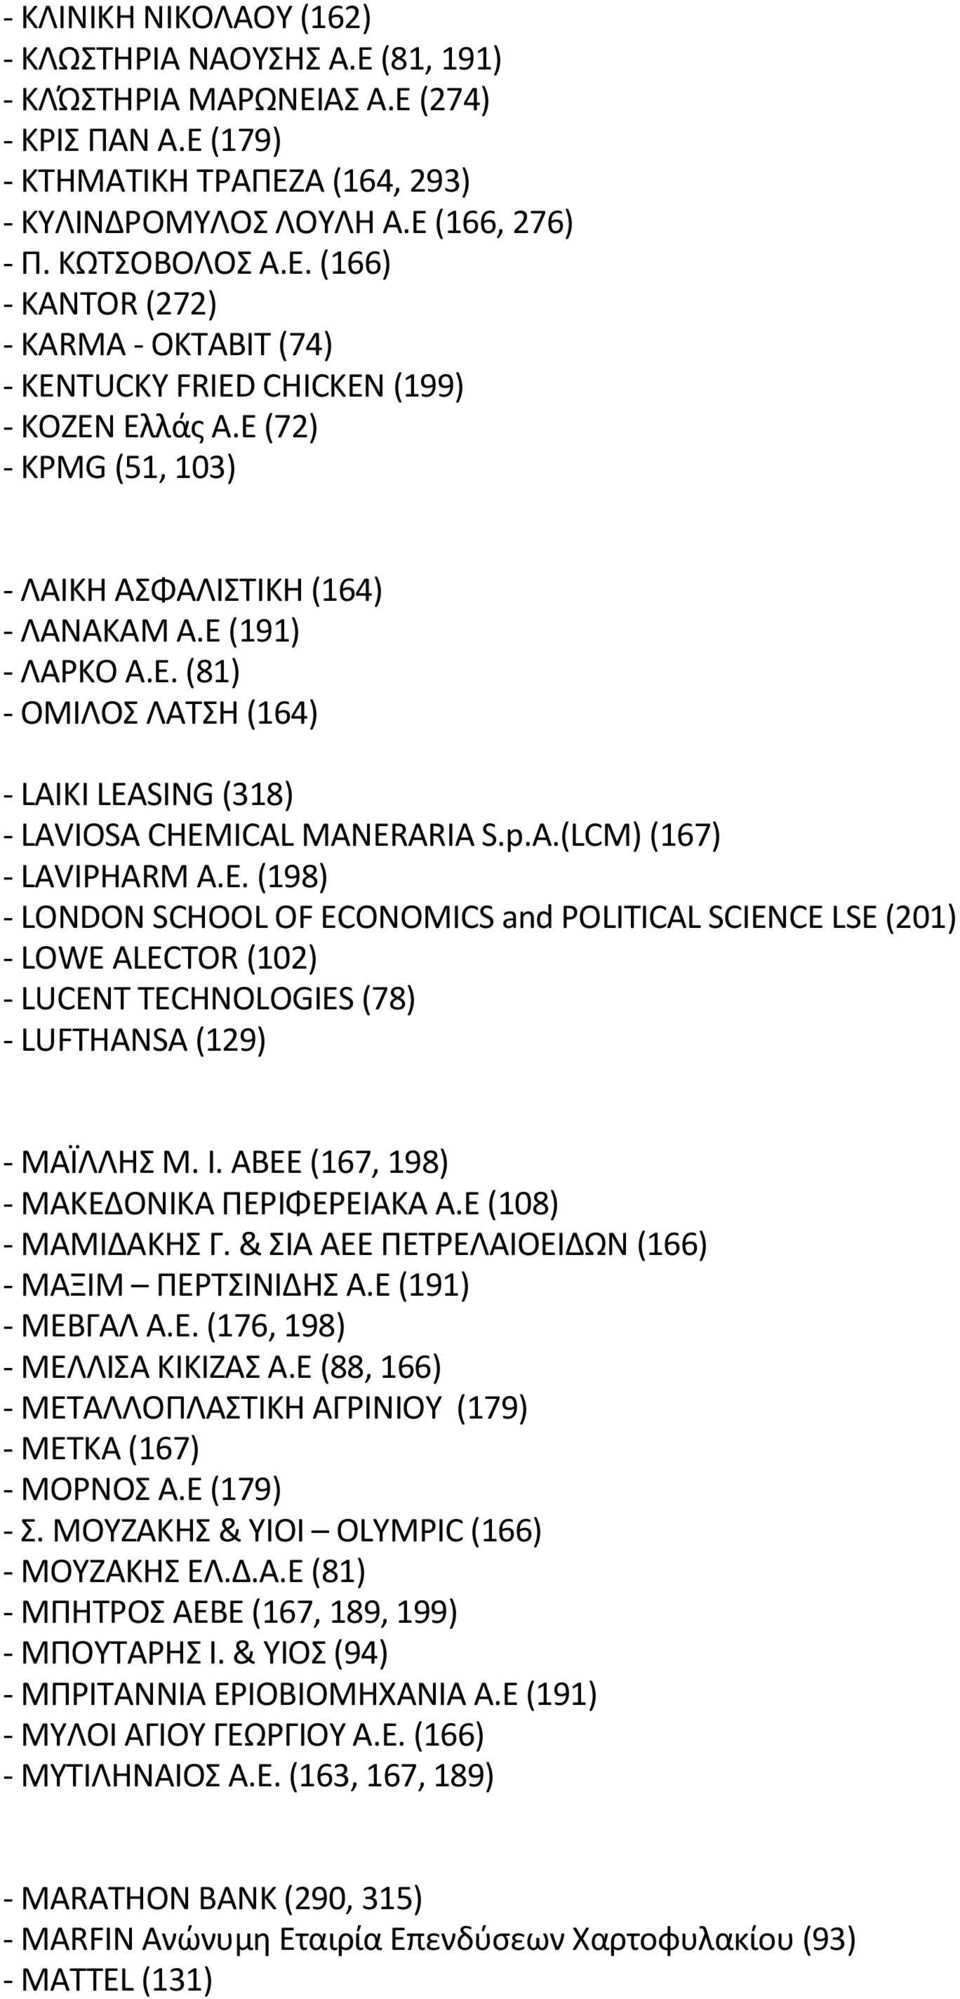 SING (318) LAVIΟSA CHEMICAL MANERARIA S.p.A.(LCM) (167) LAVIPHARM A.E. (198) LΟNDΟN SCHΟΟL ΟF ECΟNΟMICS and PΟLITICAL SCIENCE LSE (201) LOWE ALECTOR (102) LUCENT TECHNΟLΟGIES (78) LUFTHANSA (129) ΜΑΪΛΛΗΣ Μ.